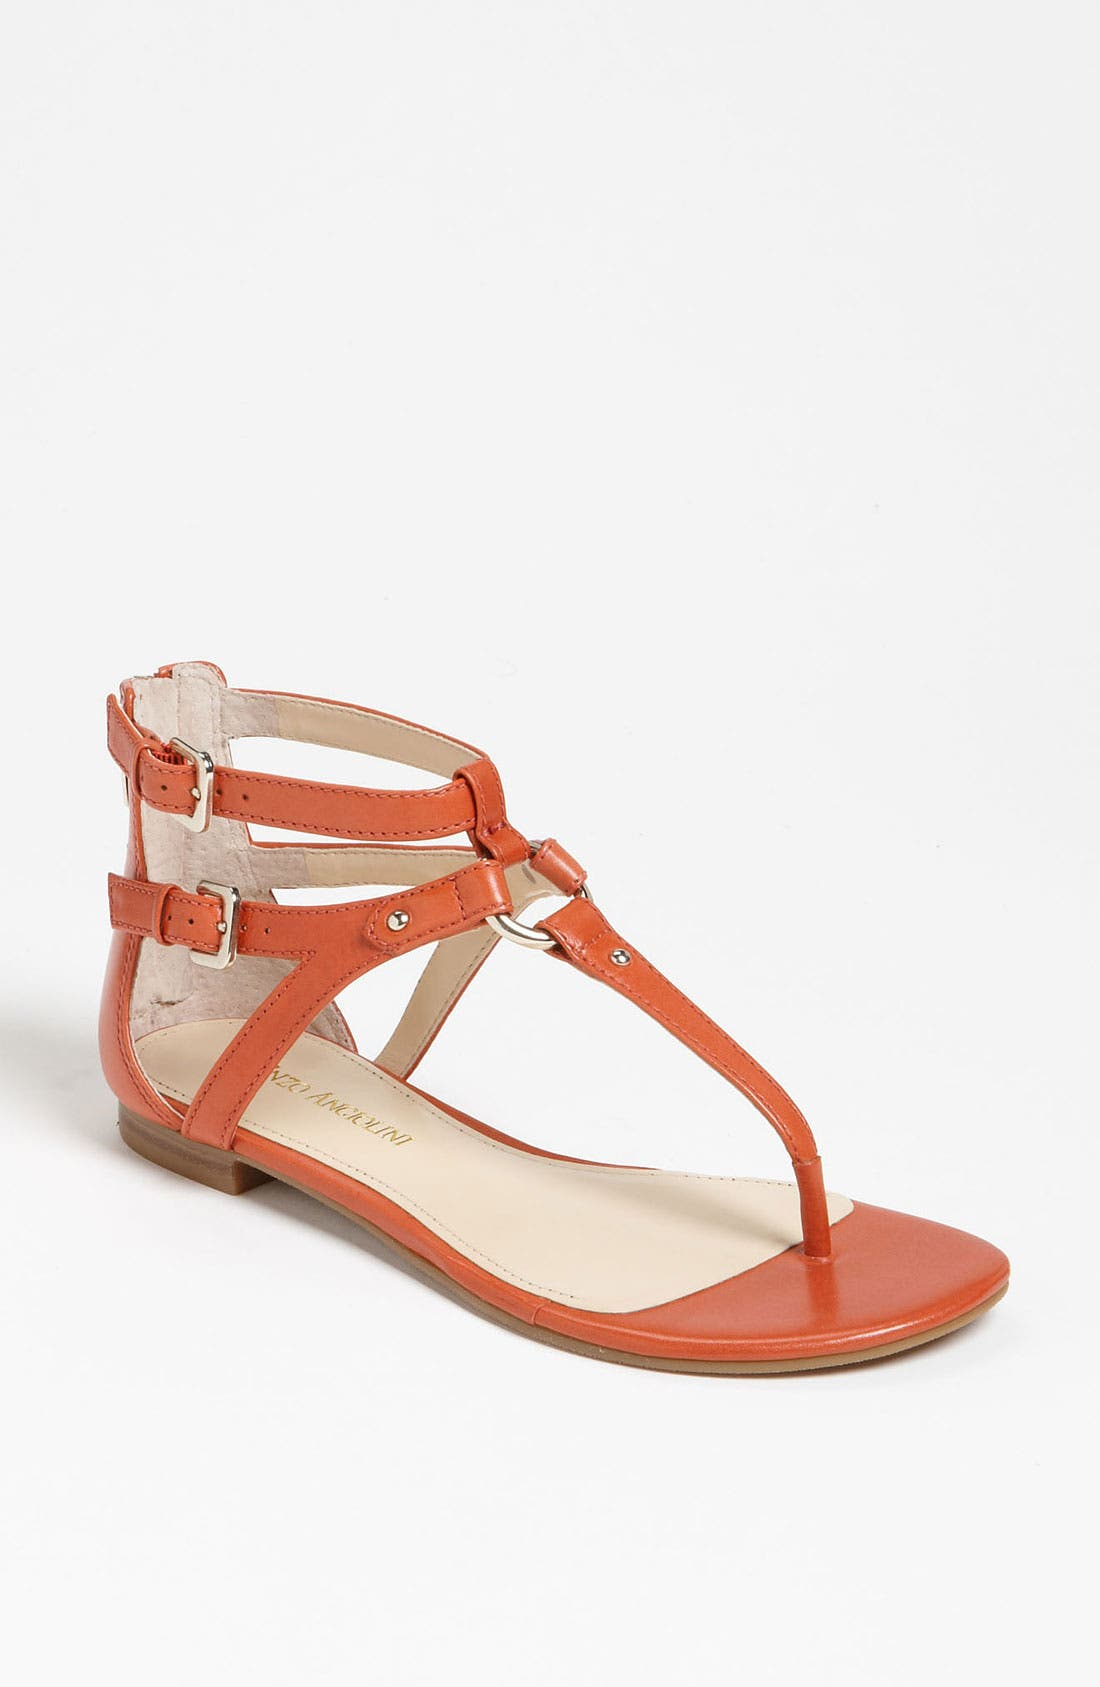 Main Image - Enzo Angiolini 'Teddy' Sandal (Special Purchase)